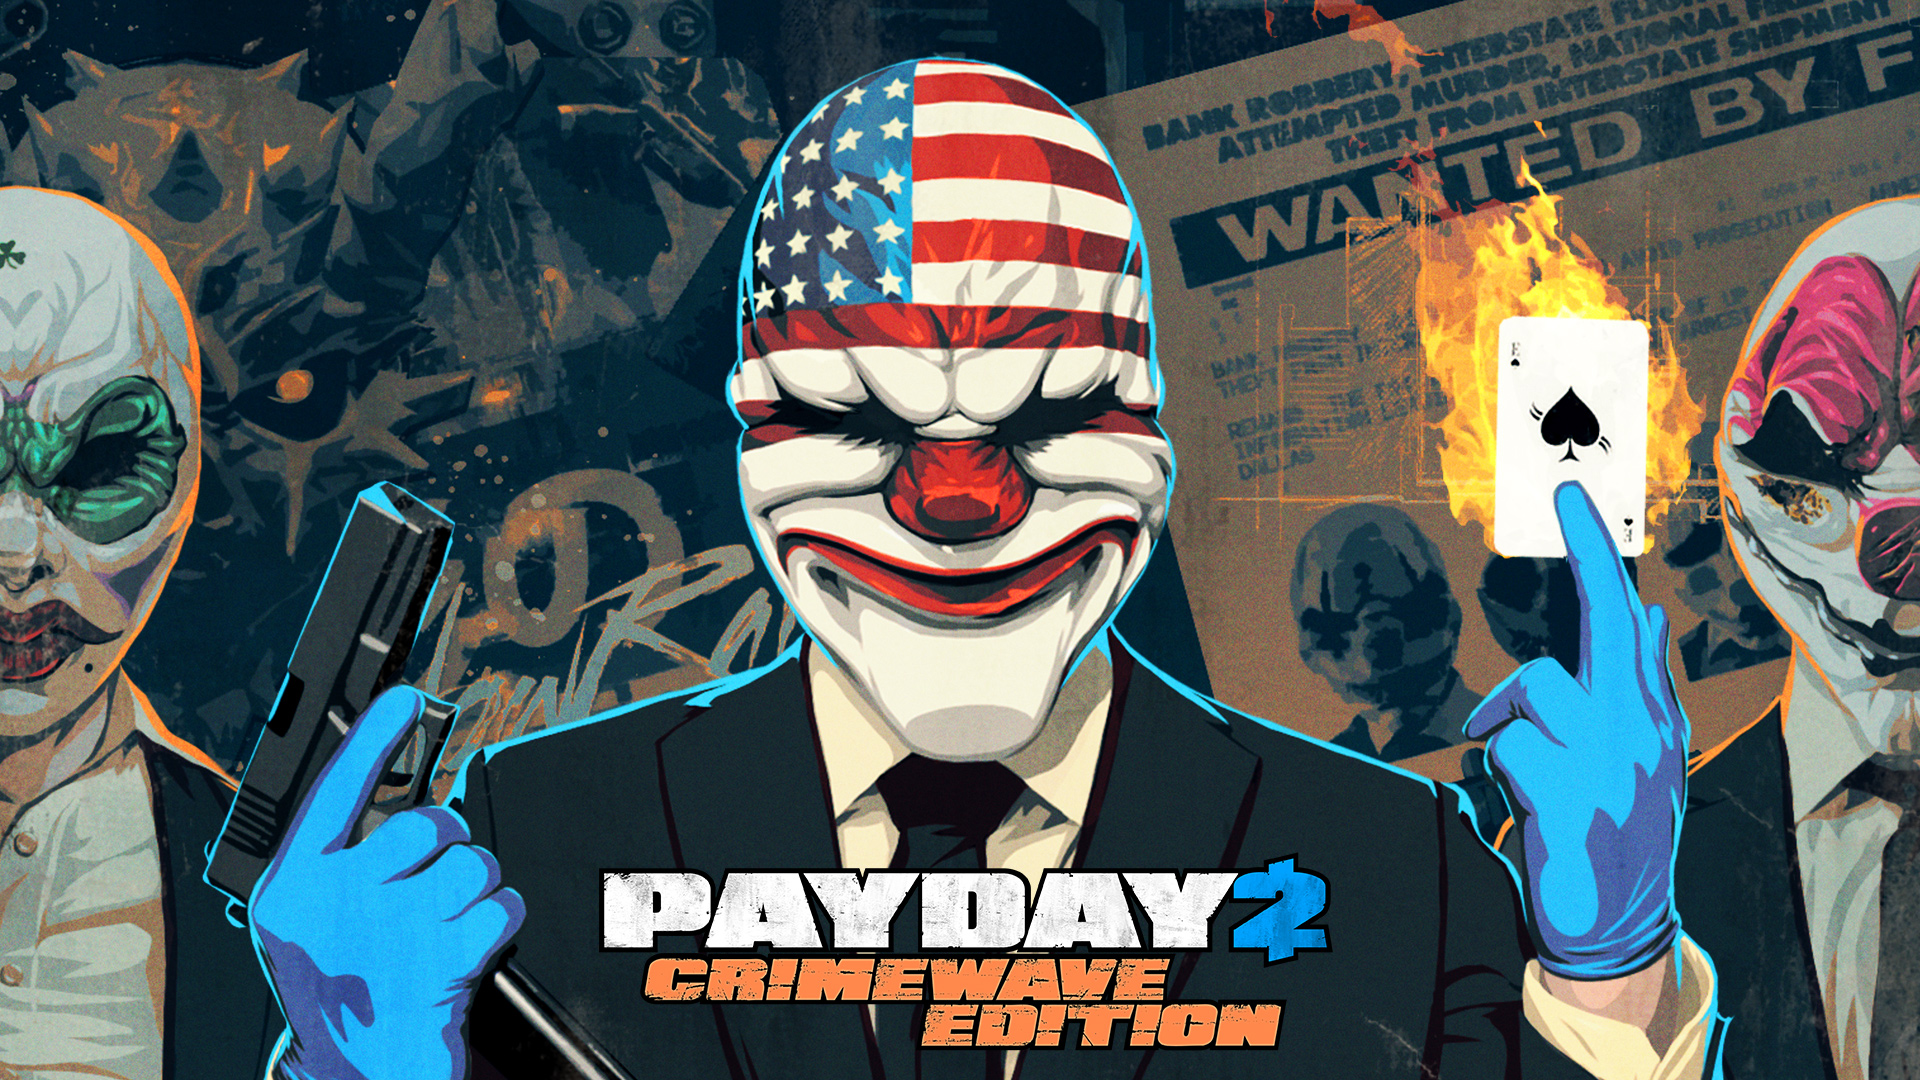 Payday  Crimewave Edition Brings The Original Crime Spree To Xbox One And Playstation  With More Than  Months Of Updates And Dlcs Included In The Box